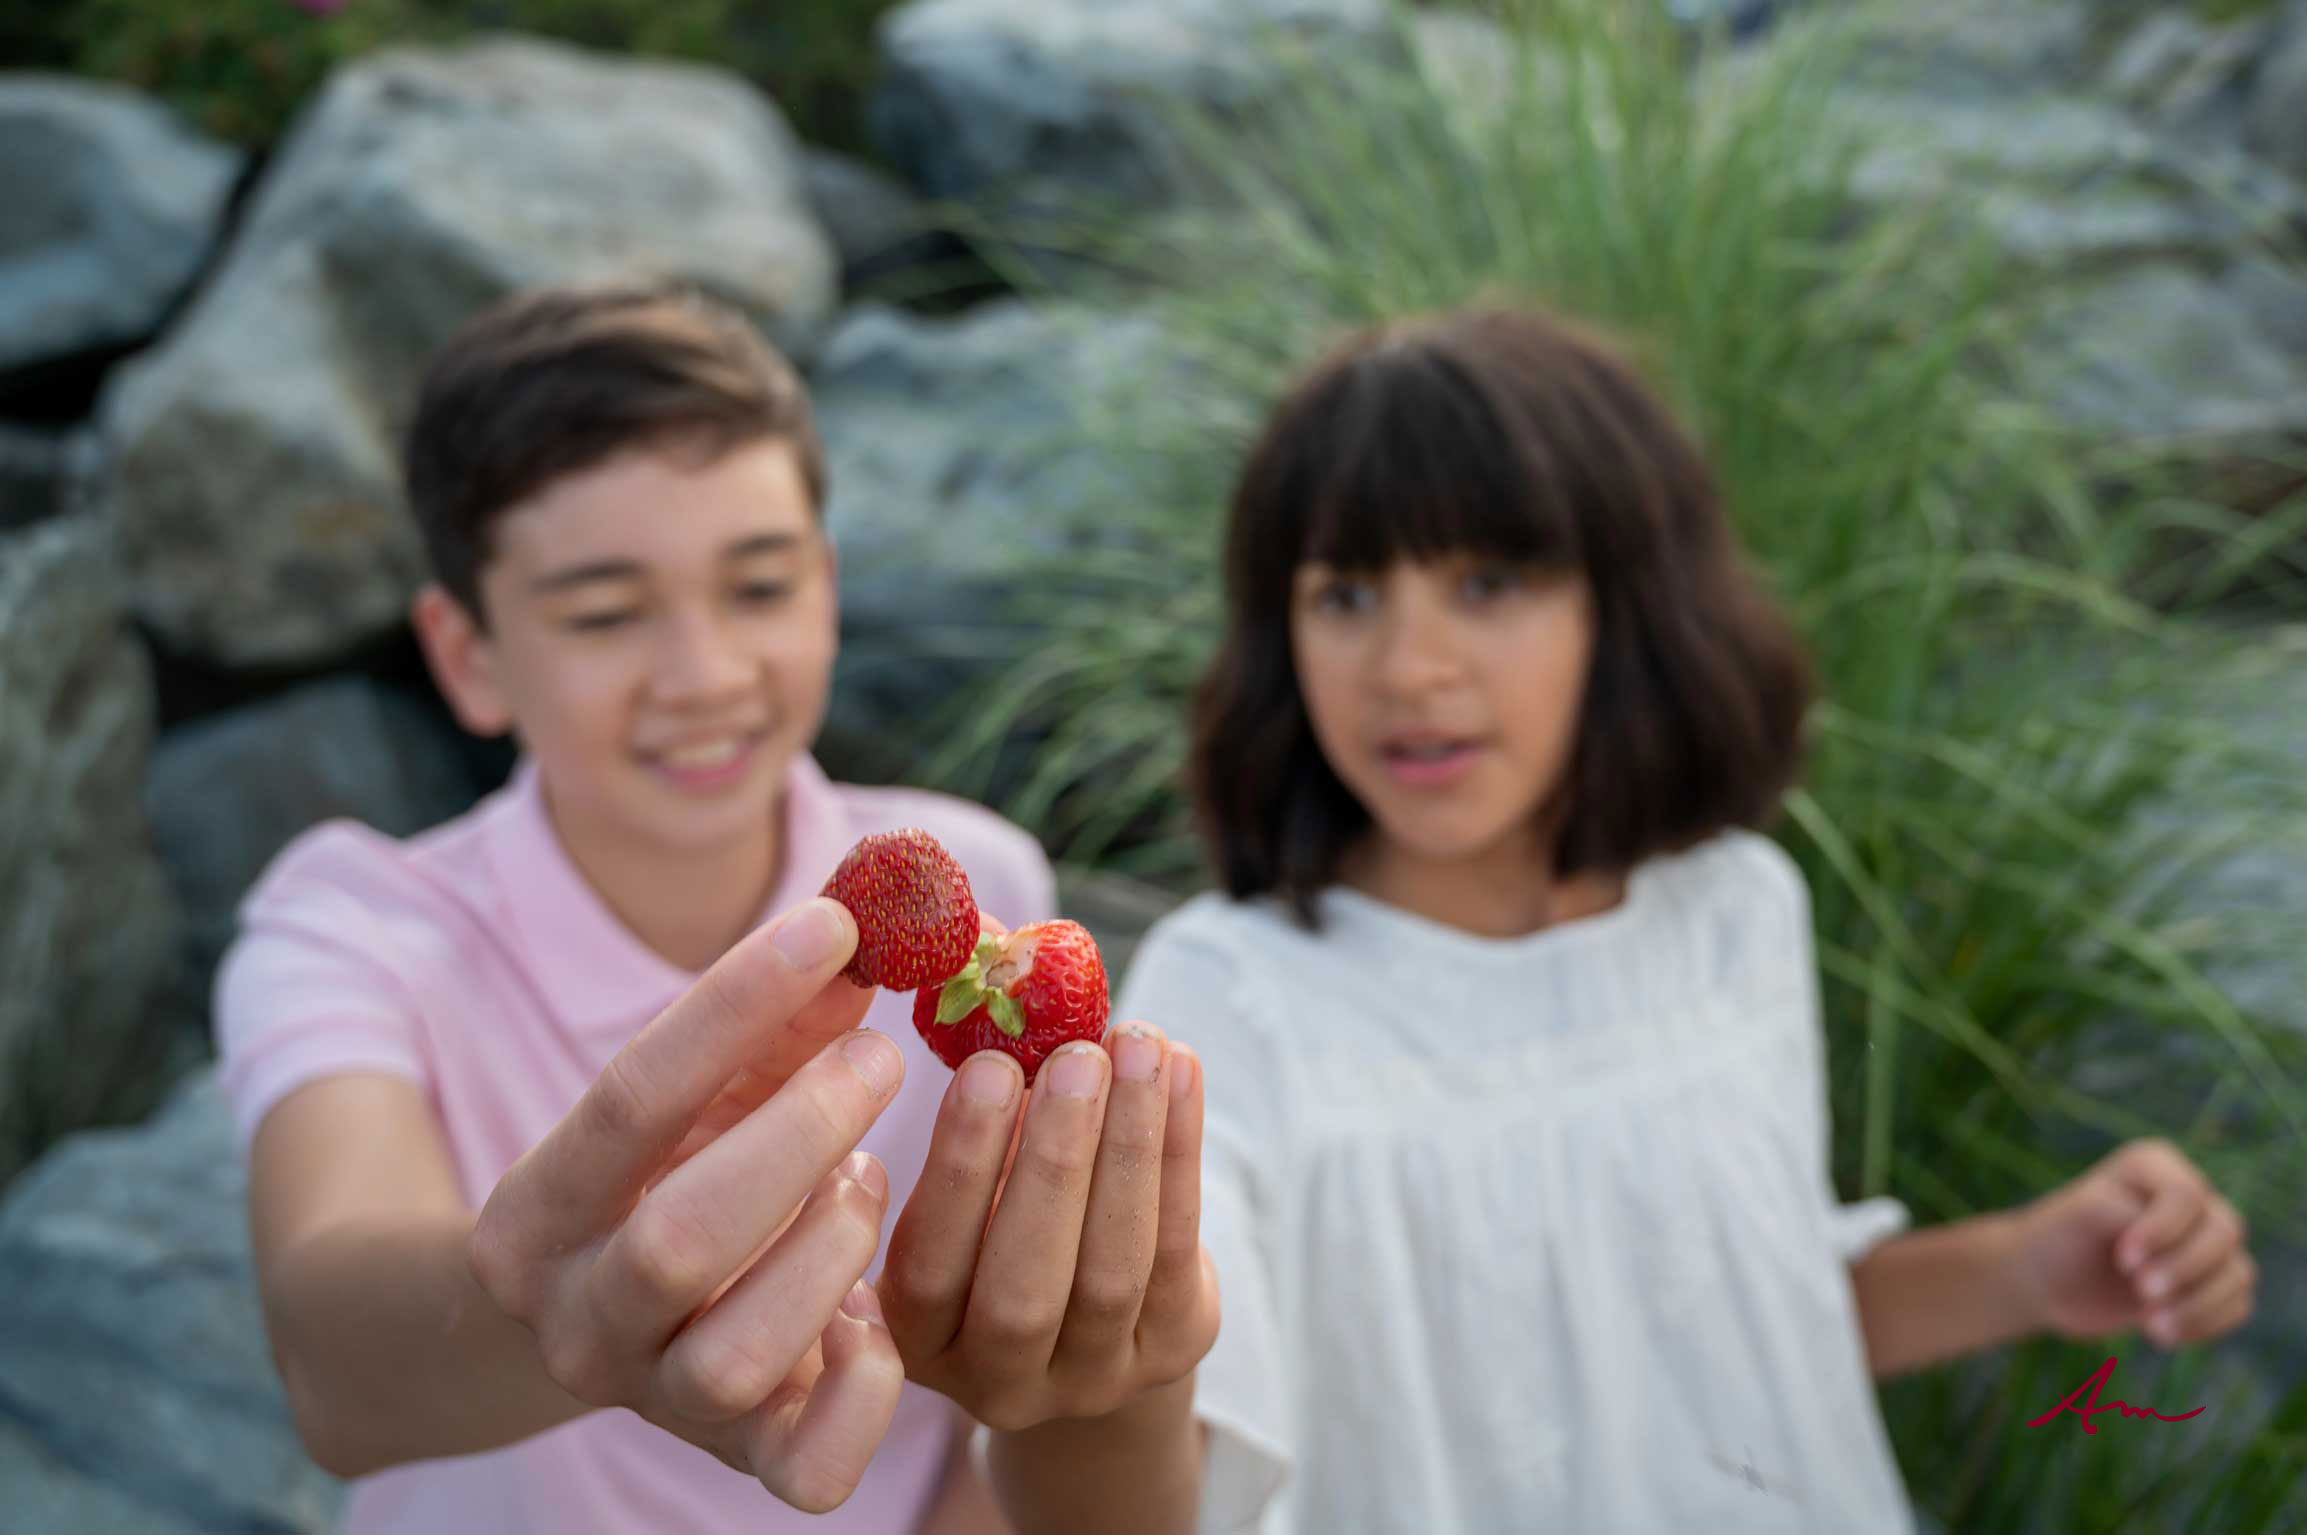 You know the stars have aligned when your session corresponds with strawberry season in Nova Scotia!